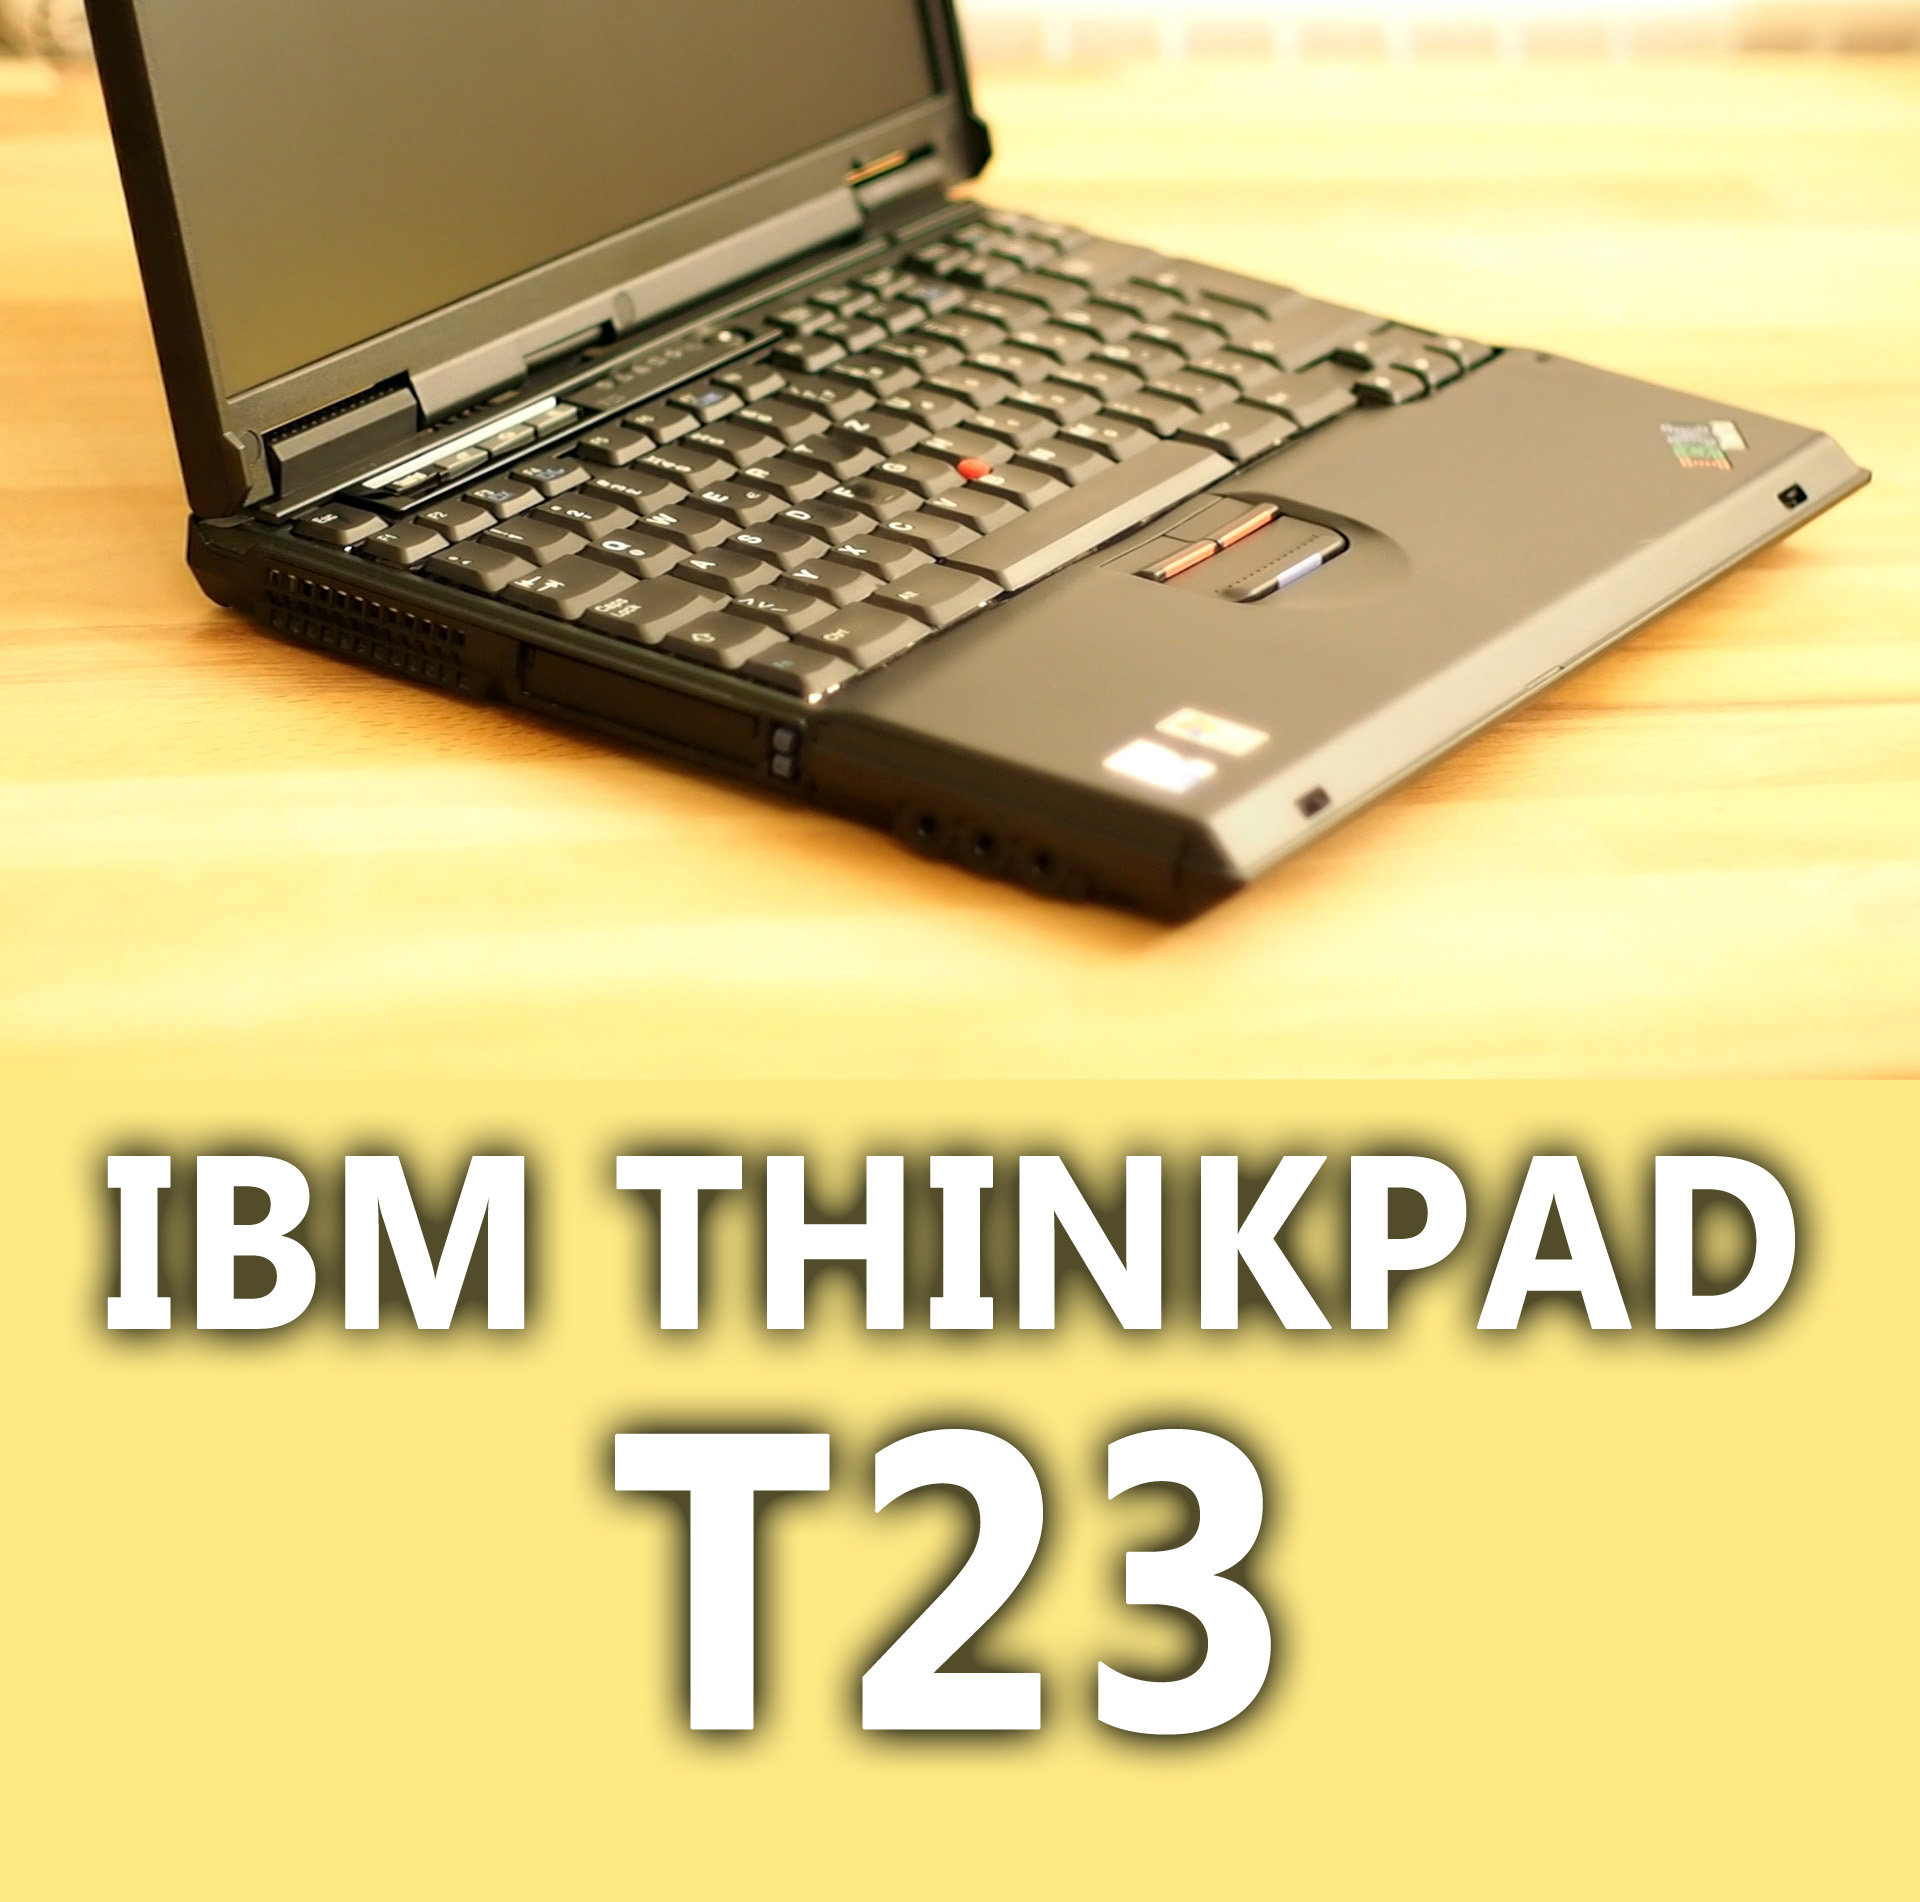 DOWNLOAD DRIVER: IBM THINKPAD T23 GRAPHIC